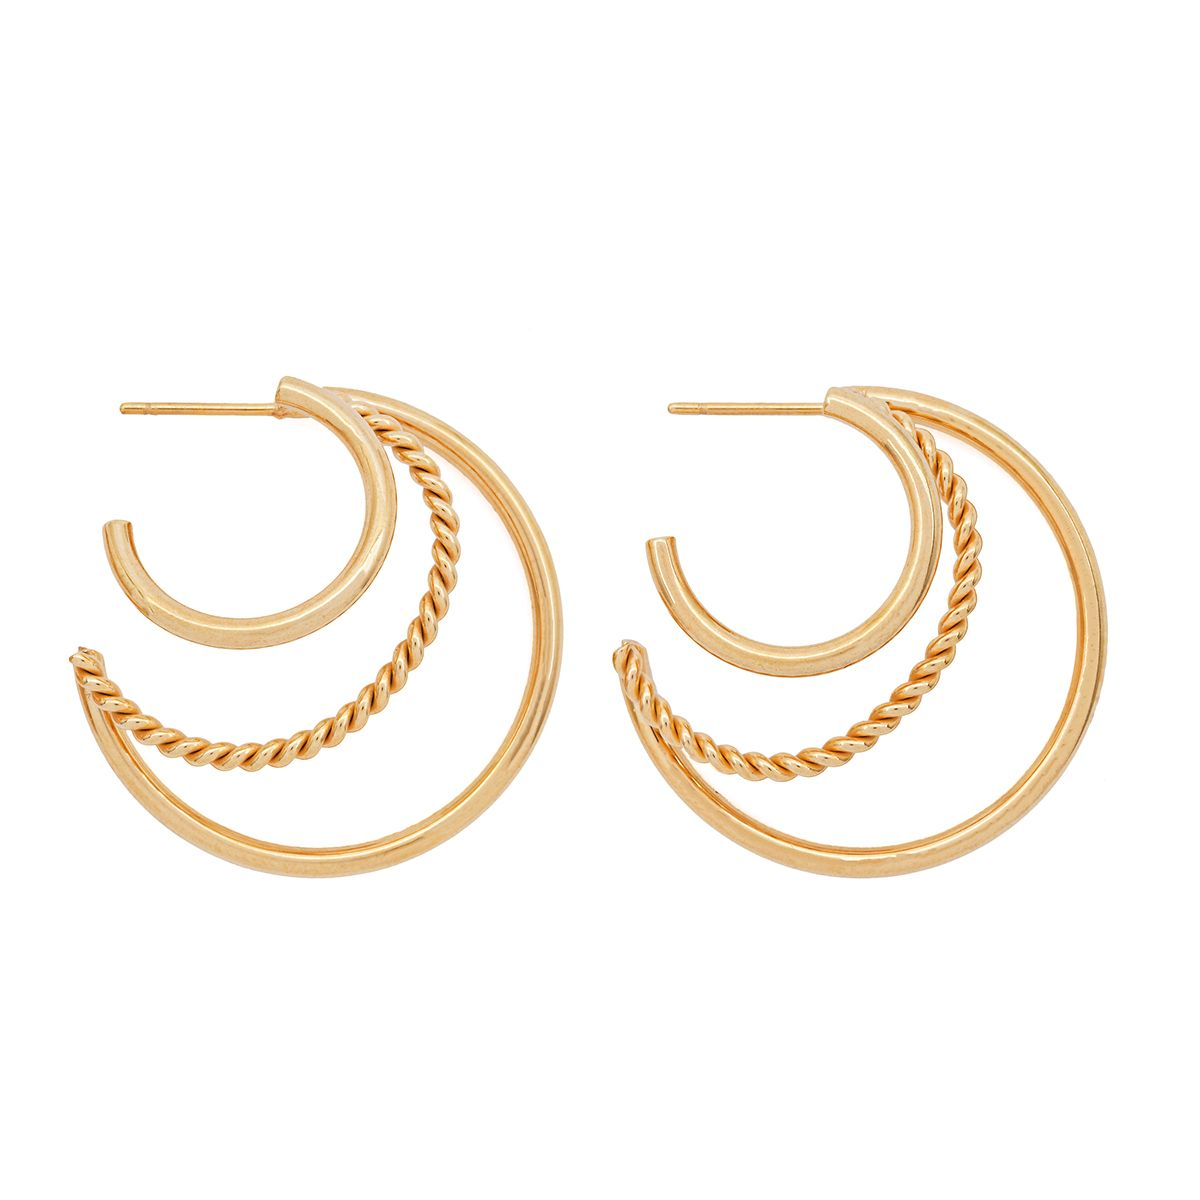 Amber Sceats Pia Earrings in Gold